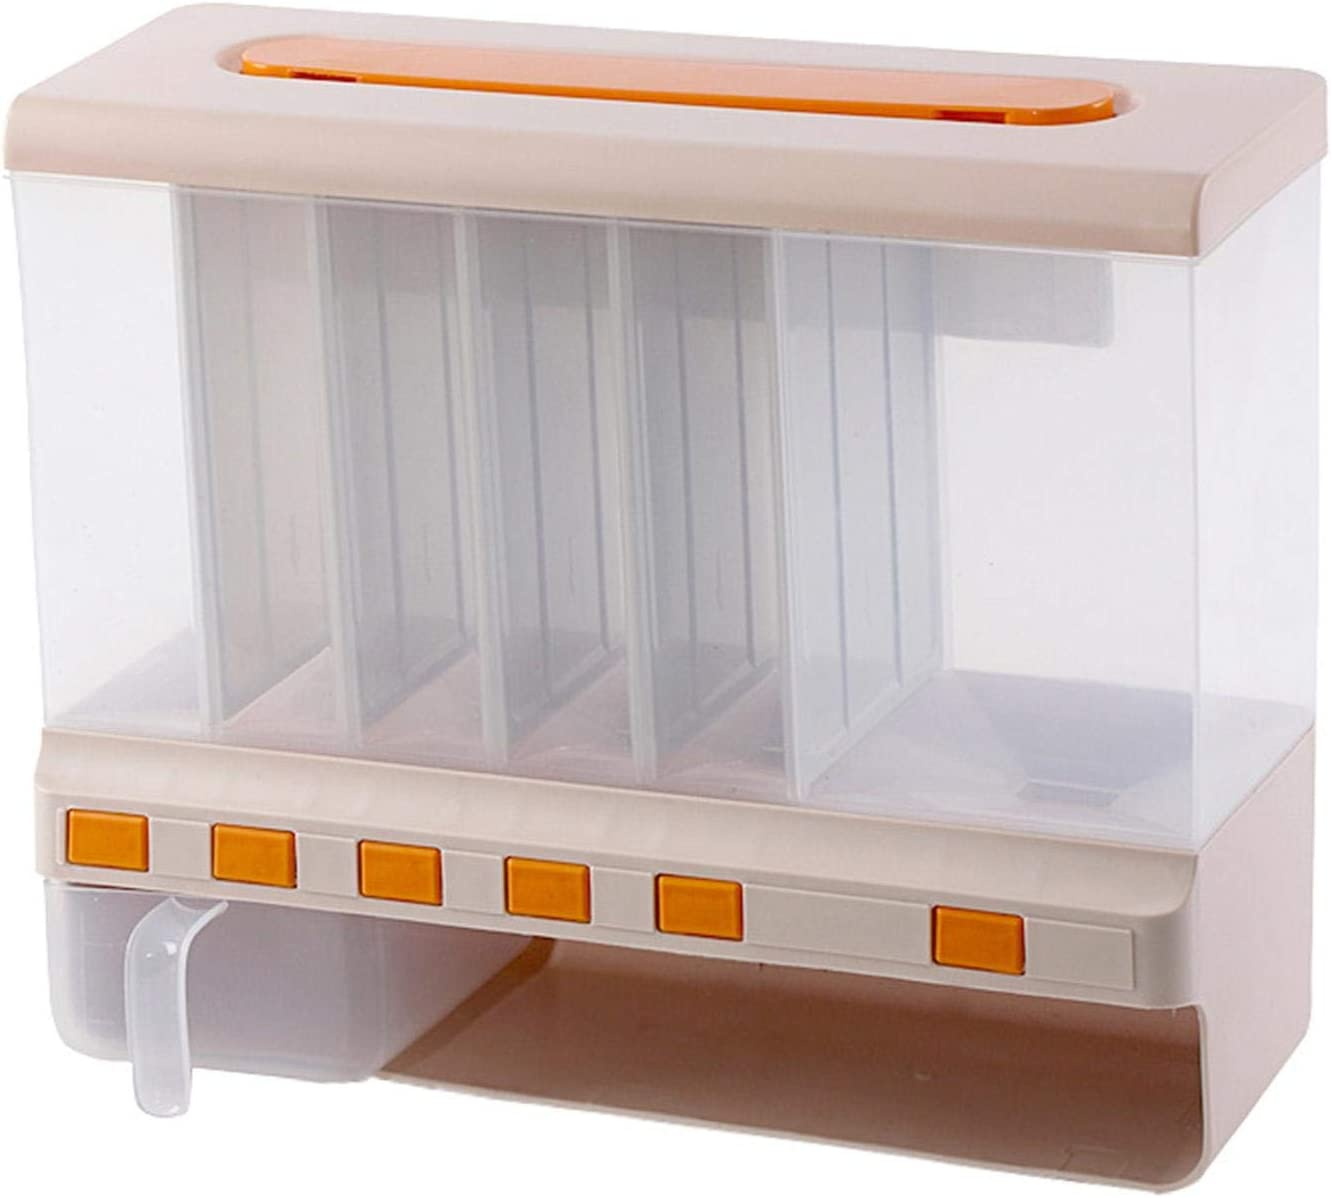 Xiaoyaoyou Dry Food Dispenser Baltimore Mall Cereal Stor Dispensers 6-Grid 2021 spring and summer new